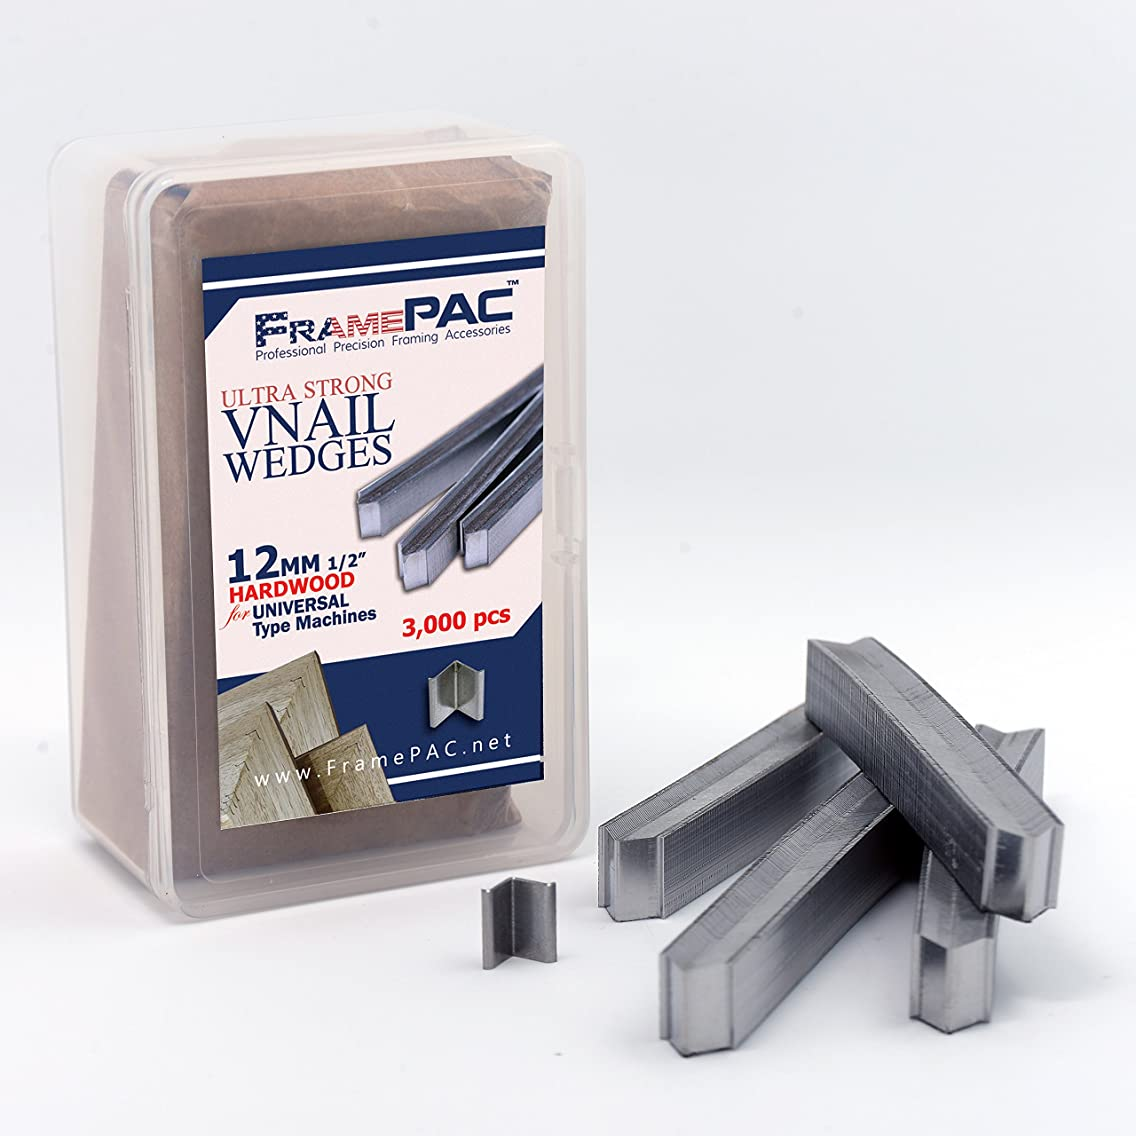 V Nails for Picture Framing - Ultra Strong - 12mm (1/2 Inch) Vnail Wedges for Joining Picture Frame Corners - Hardwood Frames - Universal (UNI) [3000 V Nail Pack, Stacked]